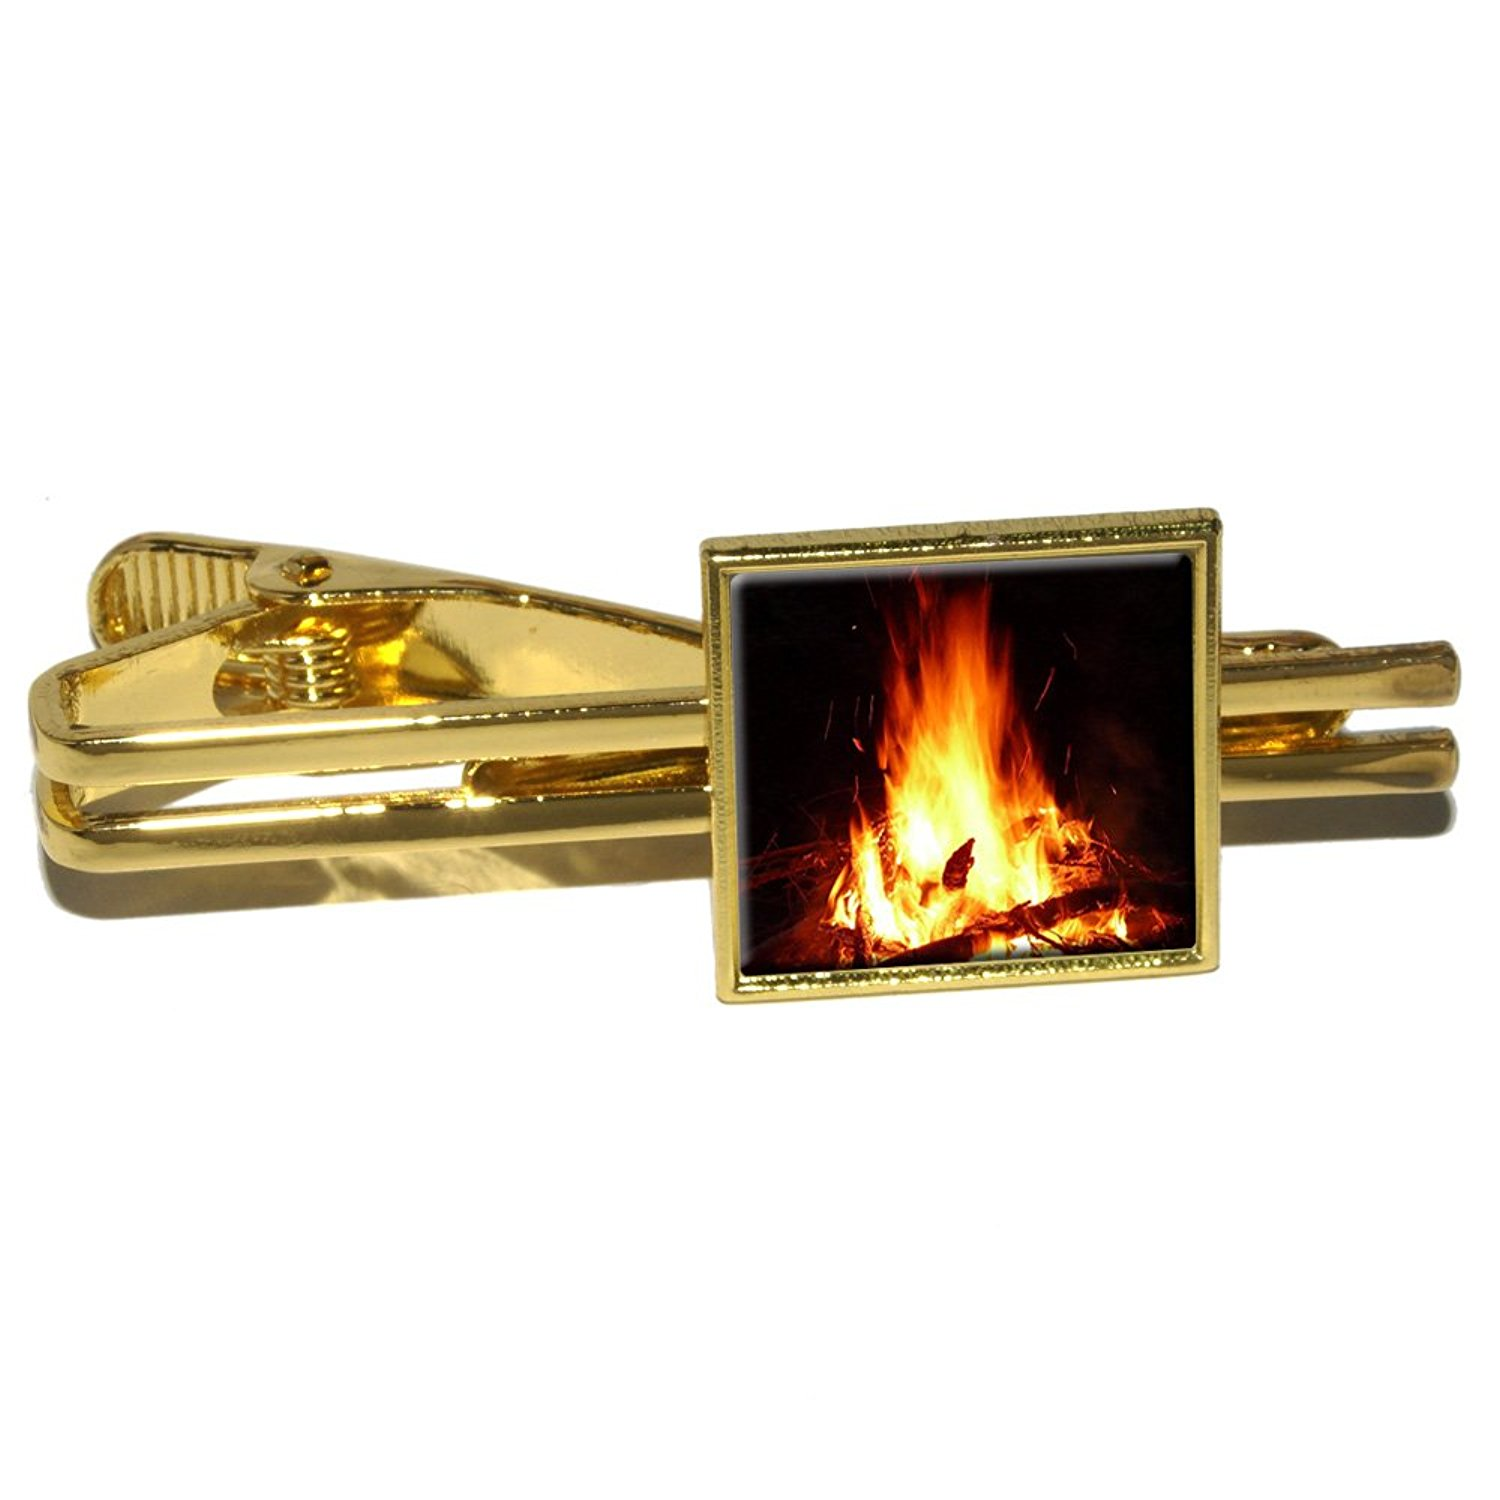 Campfire - Camp Camping Fire Pit Logs Flames Square Tie Bar Clip Clasp Tack - Gold